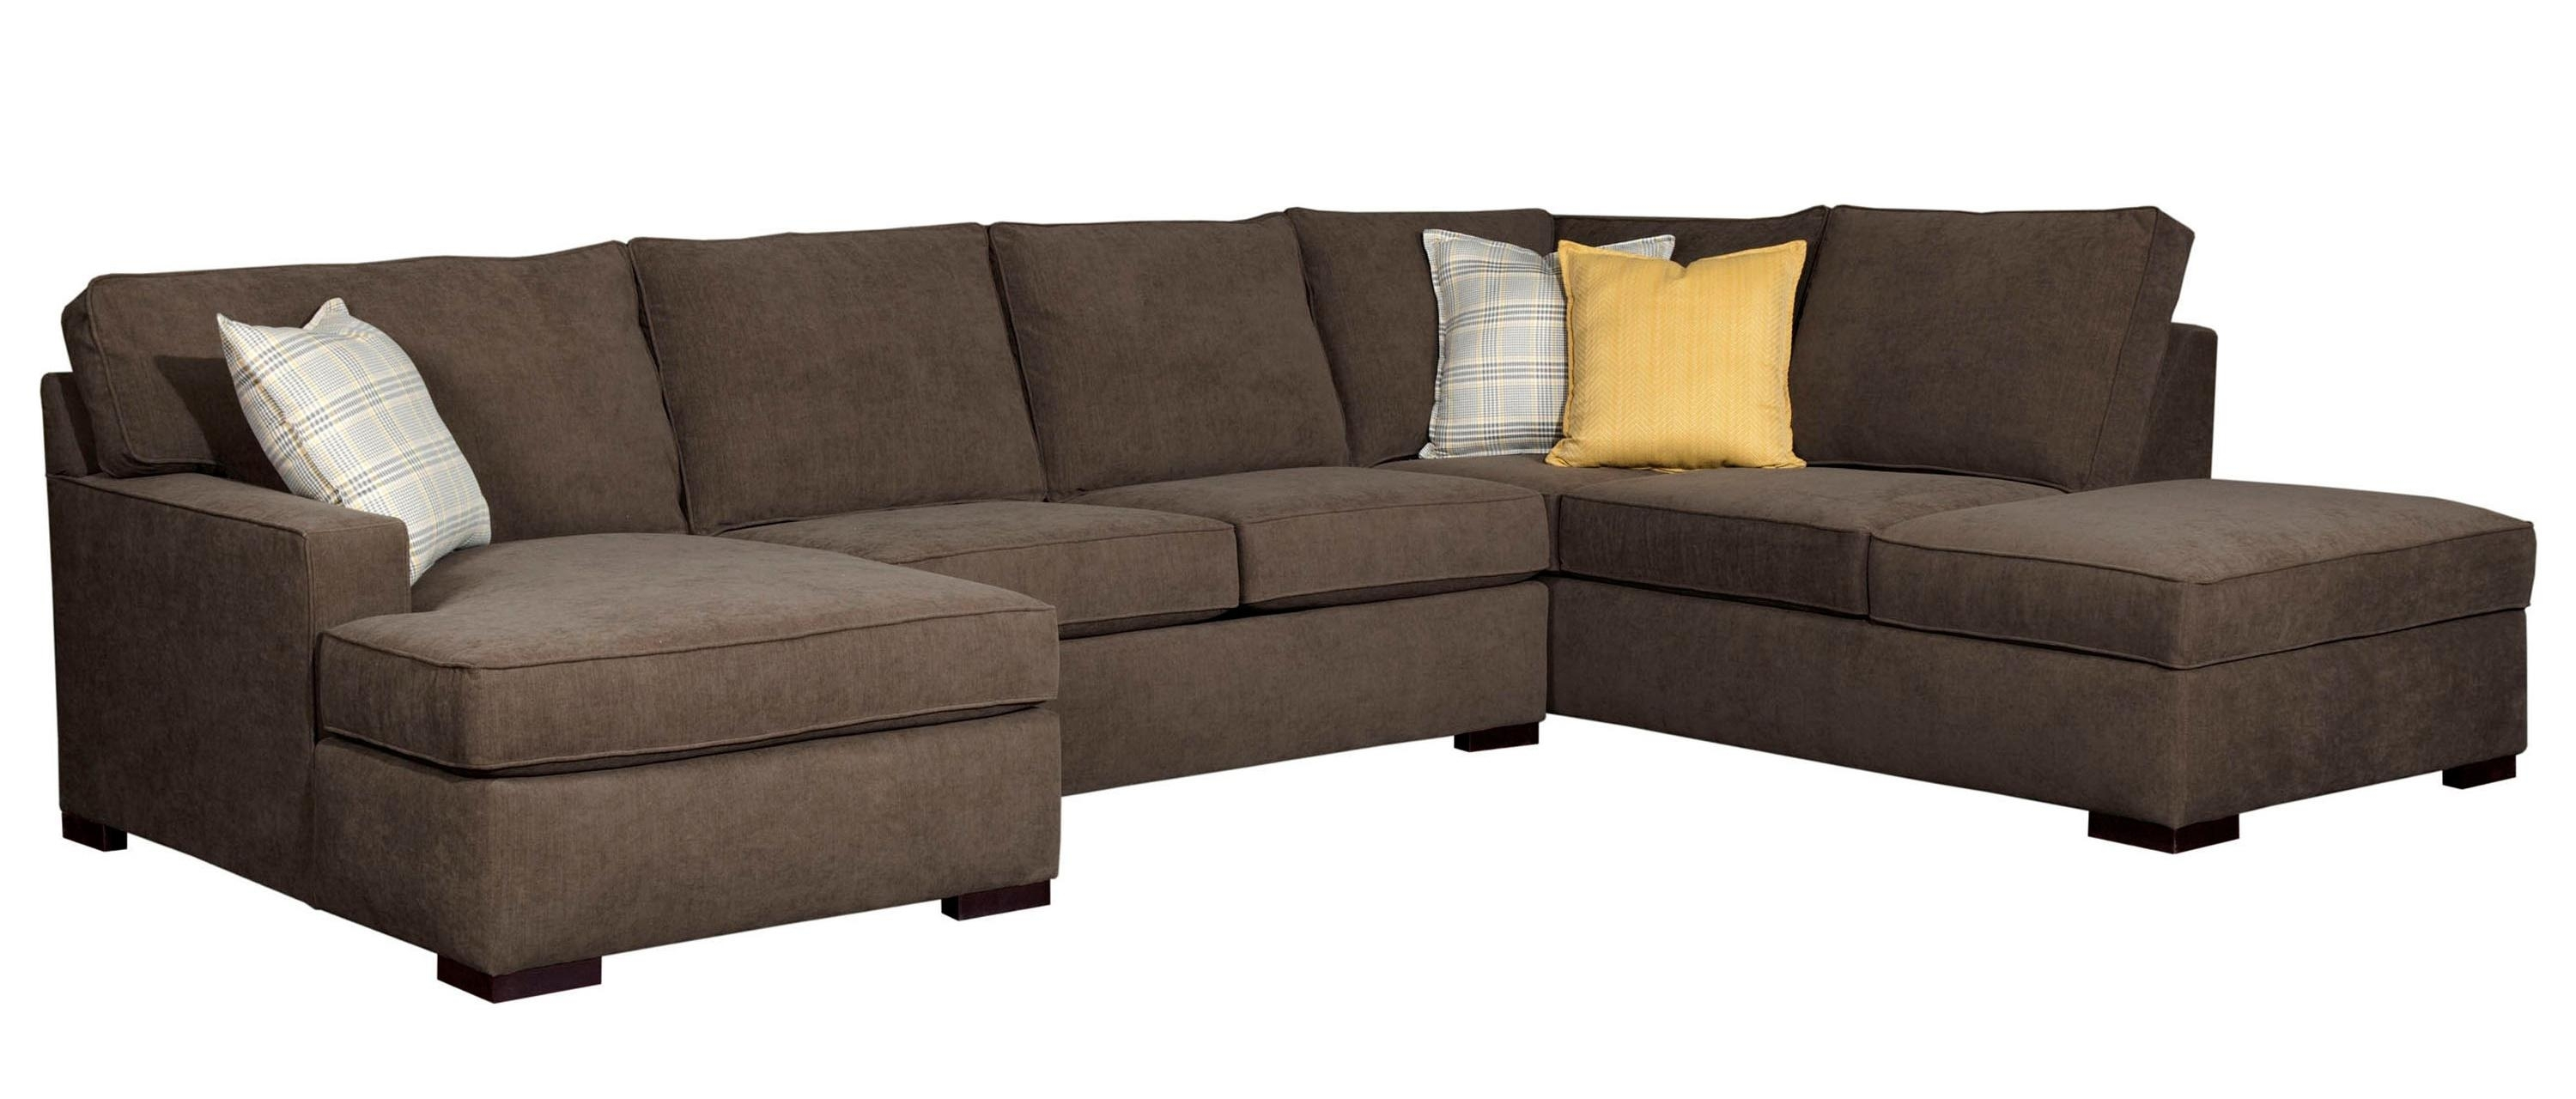 Broyhill Furniture Raphael Contemporary Sectional Sofa With Laf Regarding Sam Levitz Sectional Sofas (View 6 of 10)